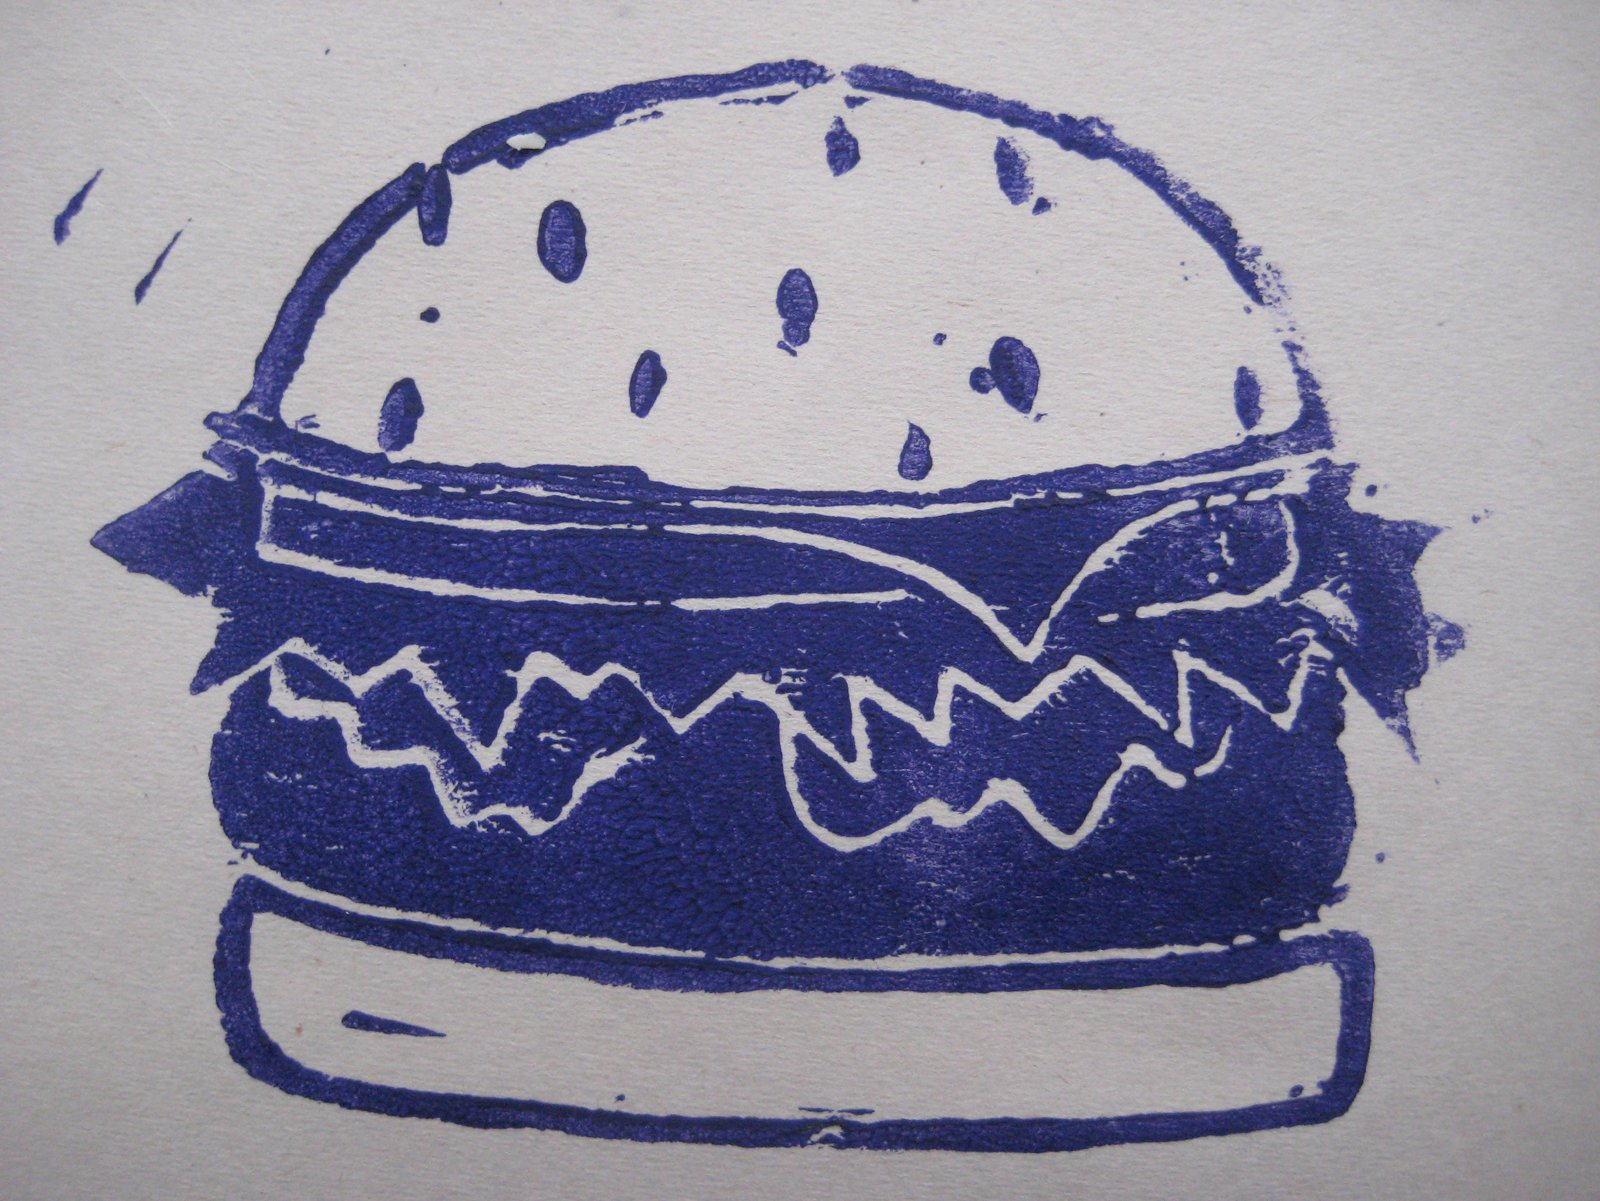 This big burger came very close to being be-Santa-hatted on these cards instead of the ice cream cone.  Introducing Home Work by Jordan Kushins